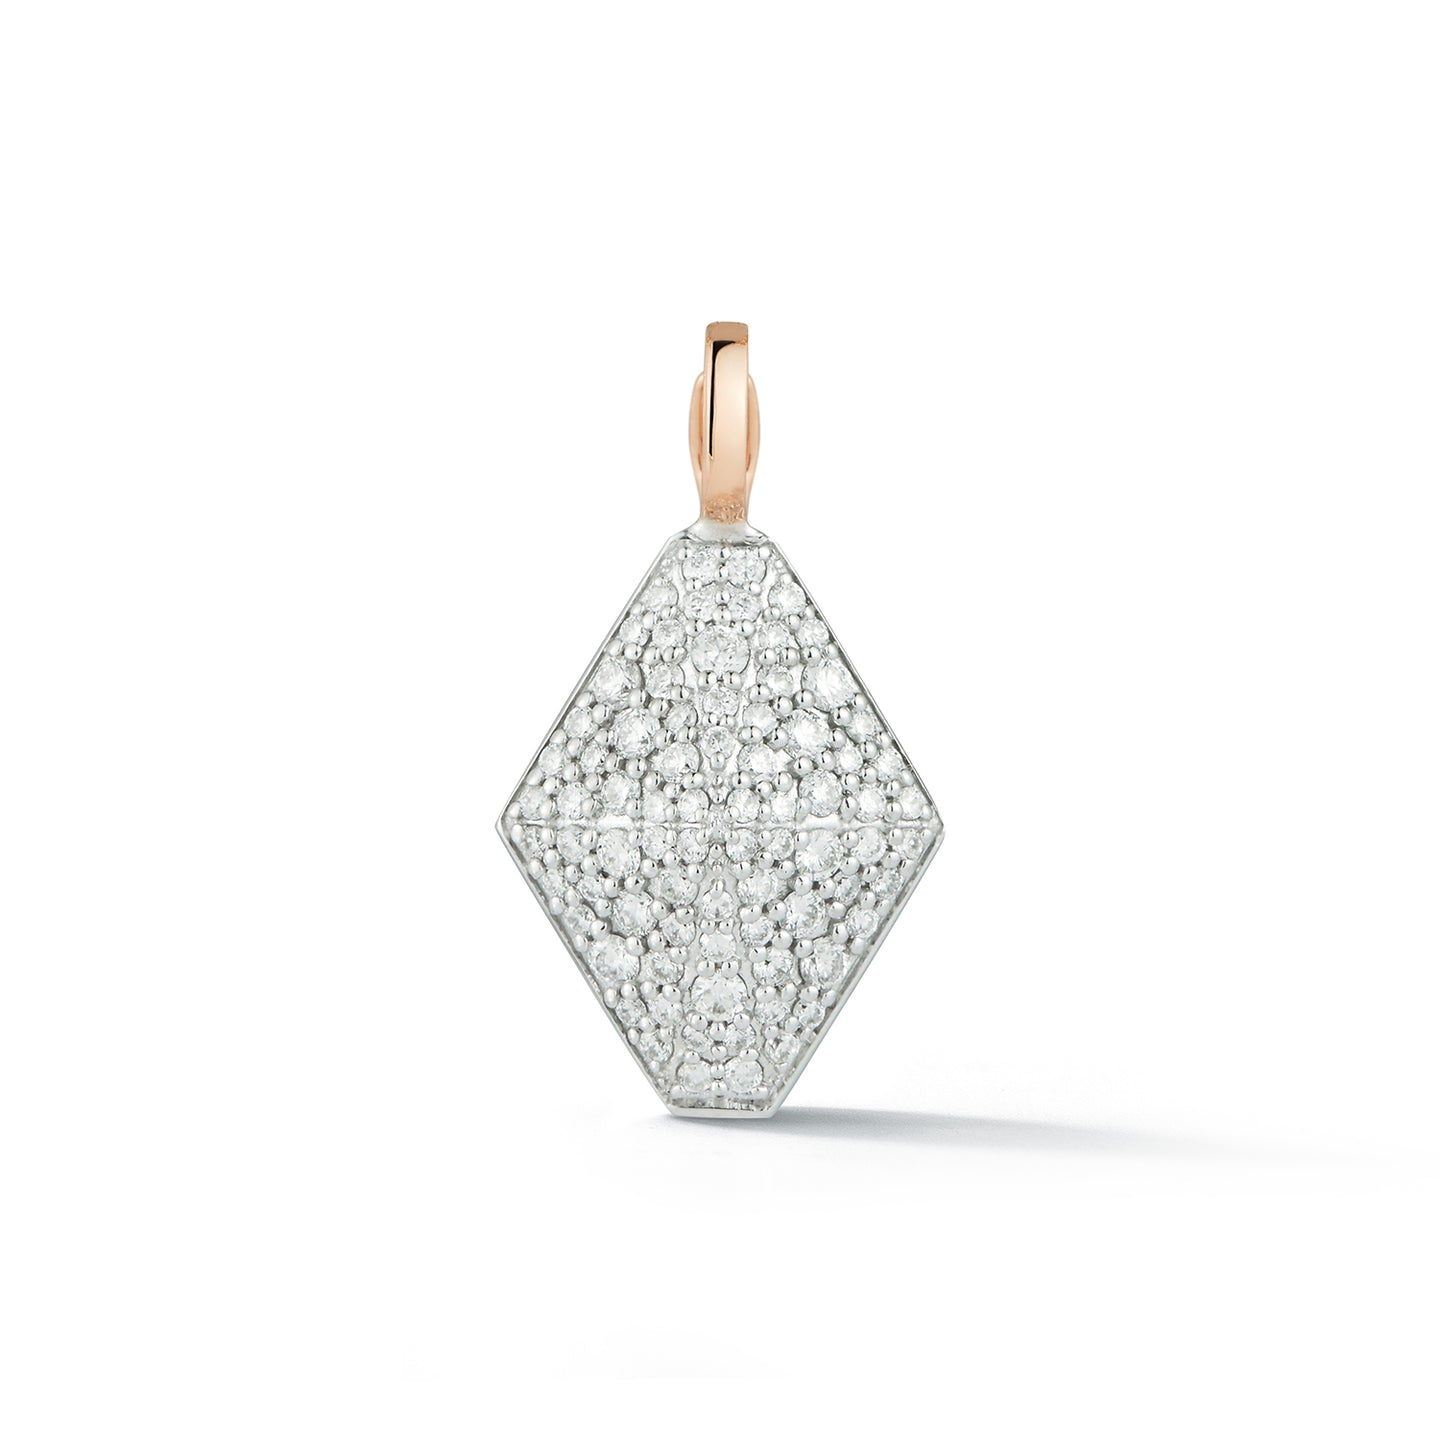 SYDNEY TWO TONE 18K DIAMOND ORIGAMI CHARM